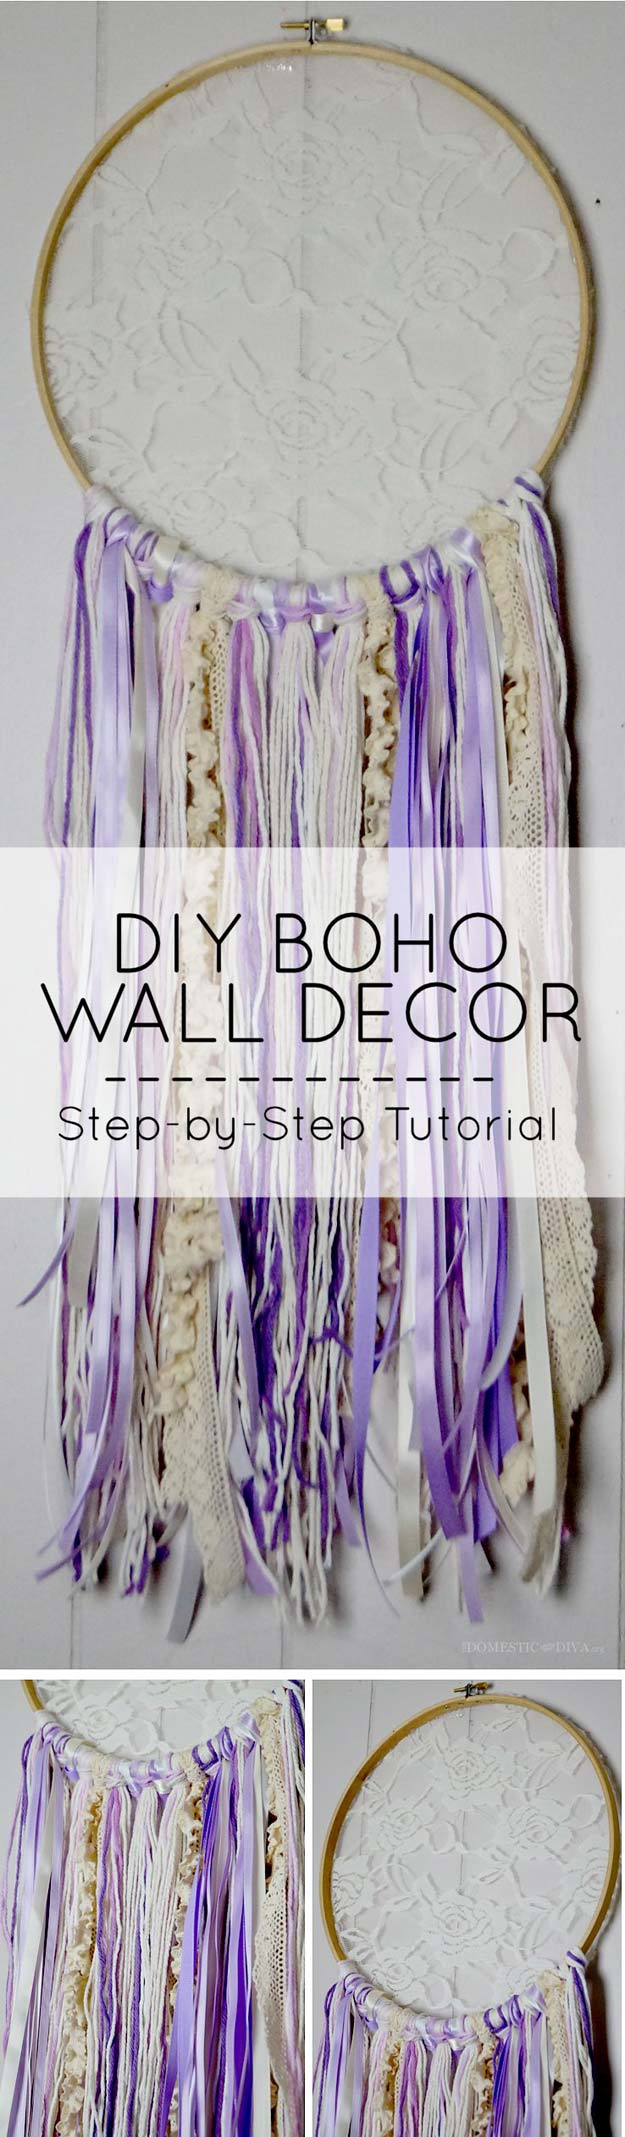 diy room decor projects step by step 26 fabulously purple diy room decor ideas 339